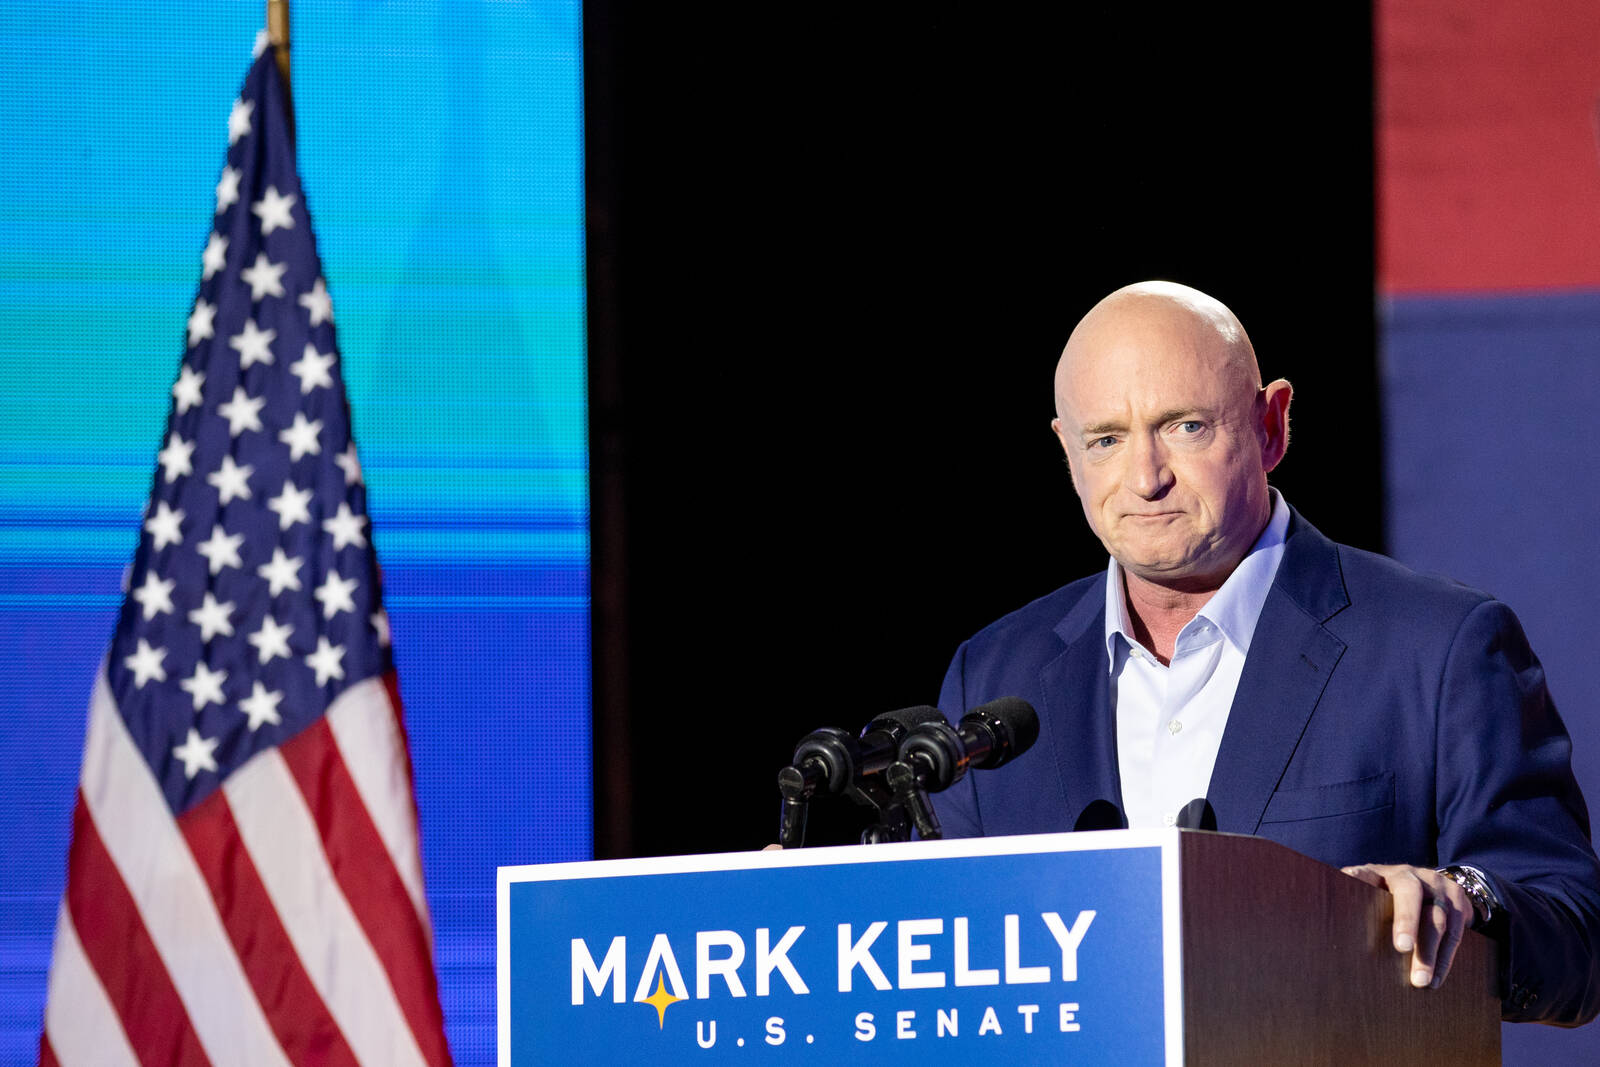 Democratic U.S. Senate candidate Mark Kelly speaks to supporters during the Election Night event at Hotel Congress on Nov. 3, 2020 in Tucson, Arizona. Kelly defeated Republican Sen. Martha McSally (R-Arizona) for Arizona's Senate seat. Credit: Courtney Pe